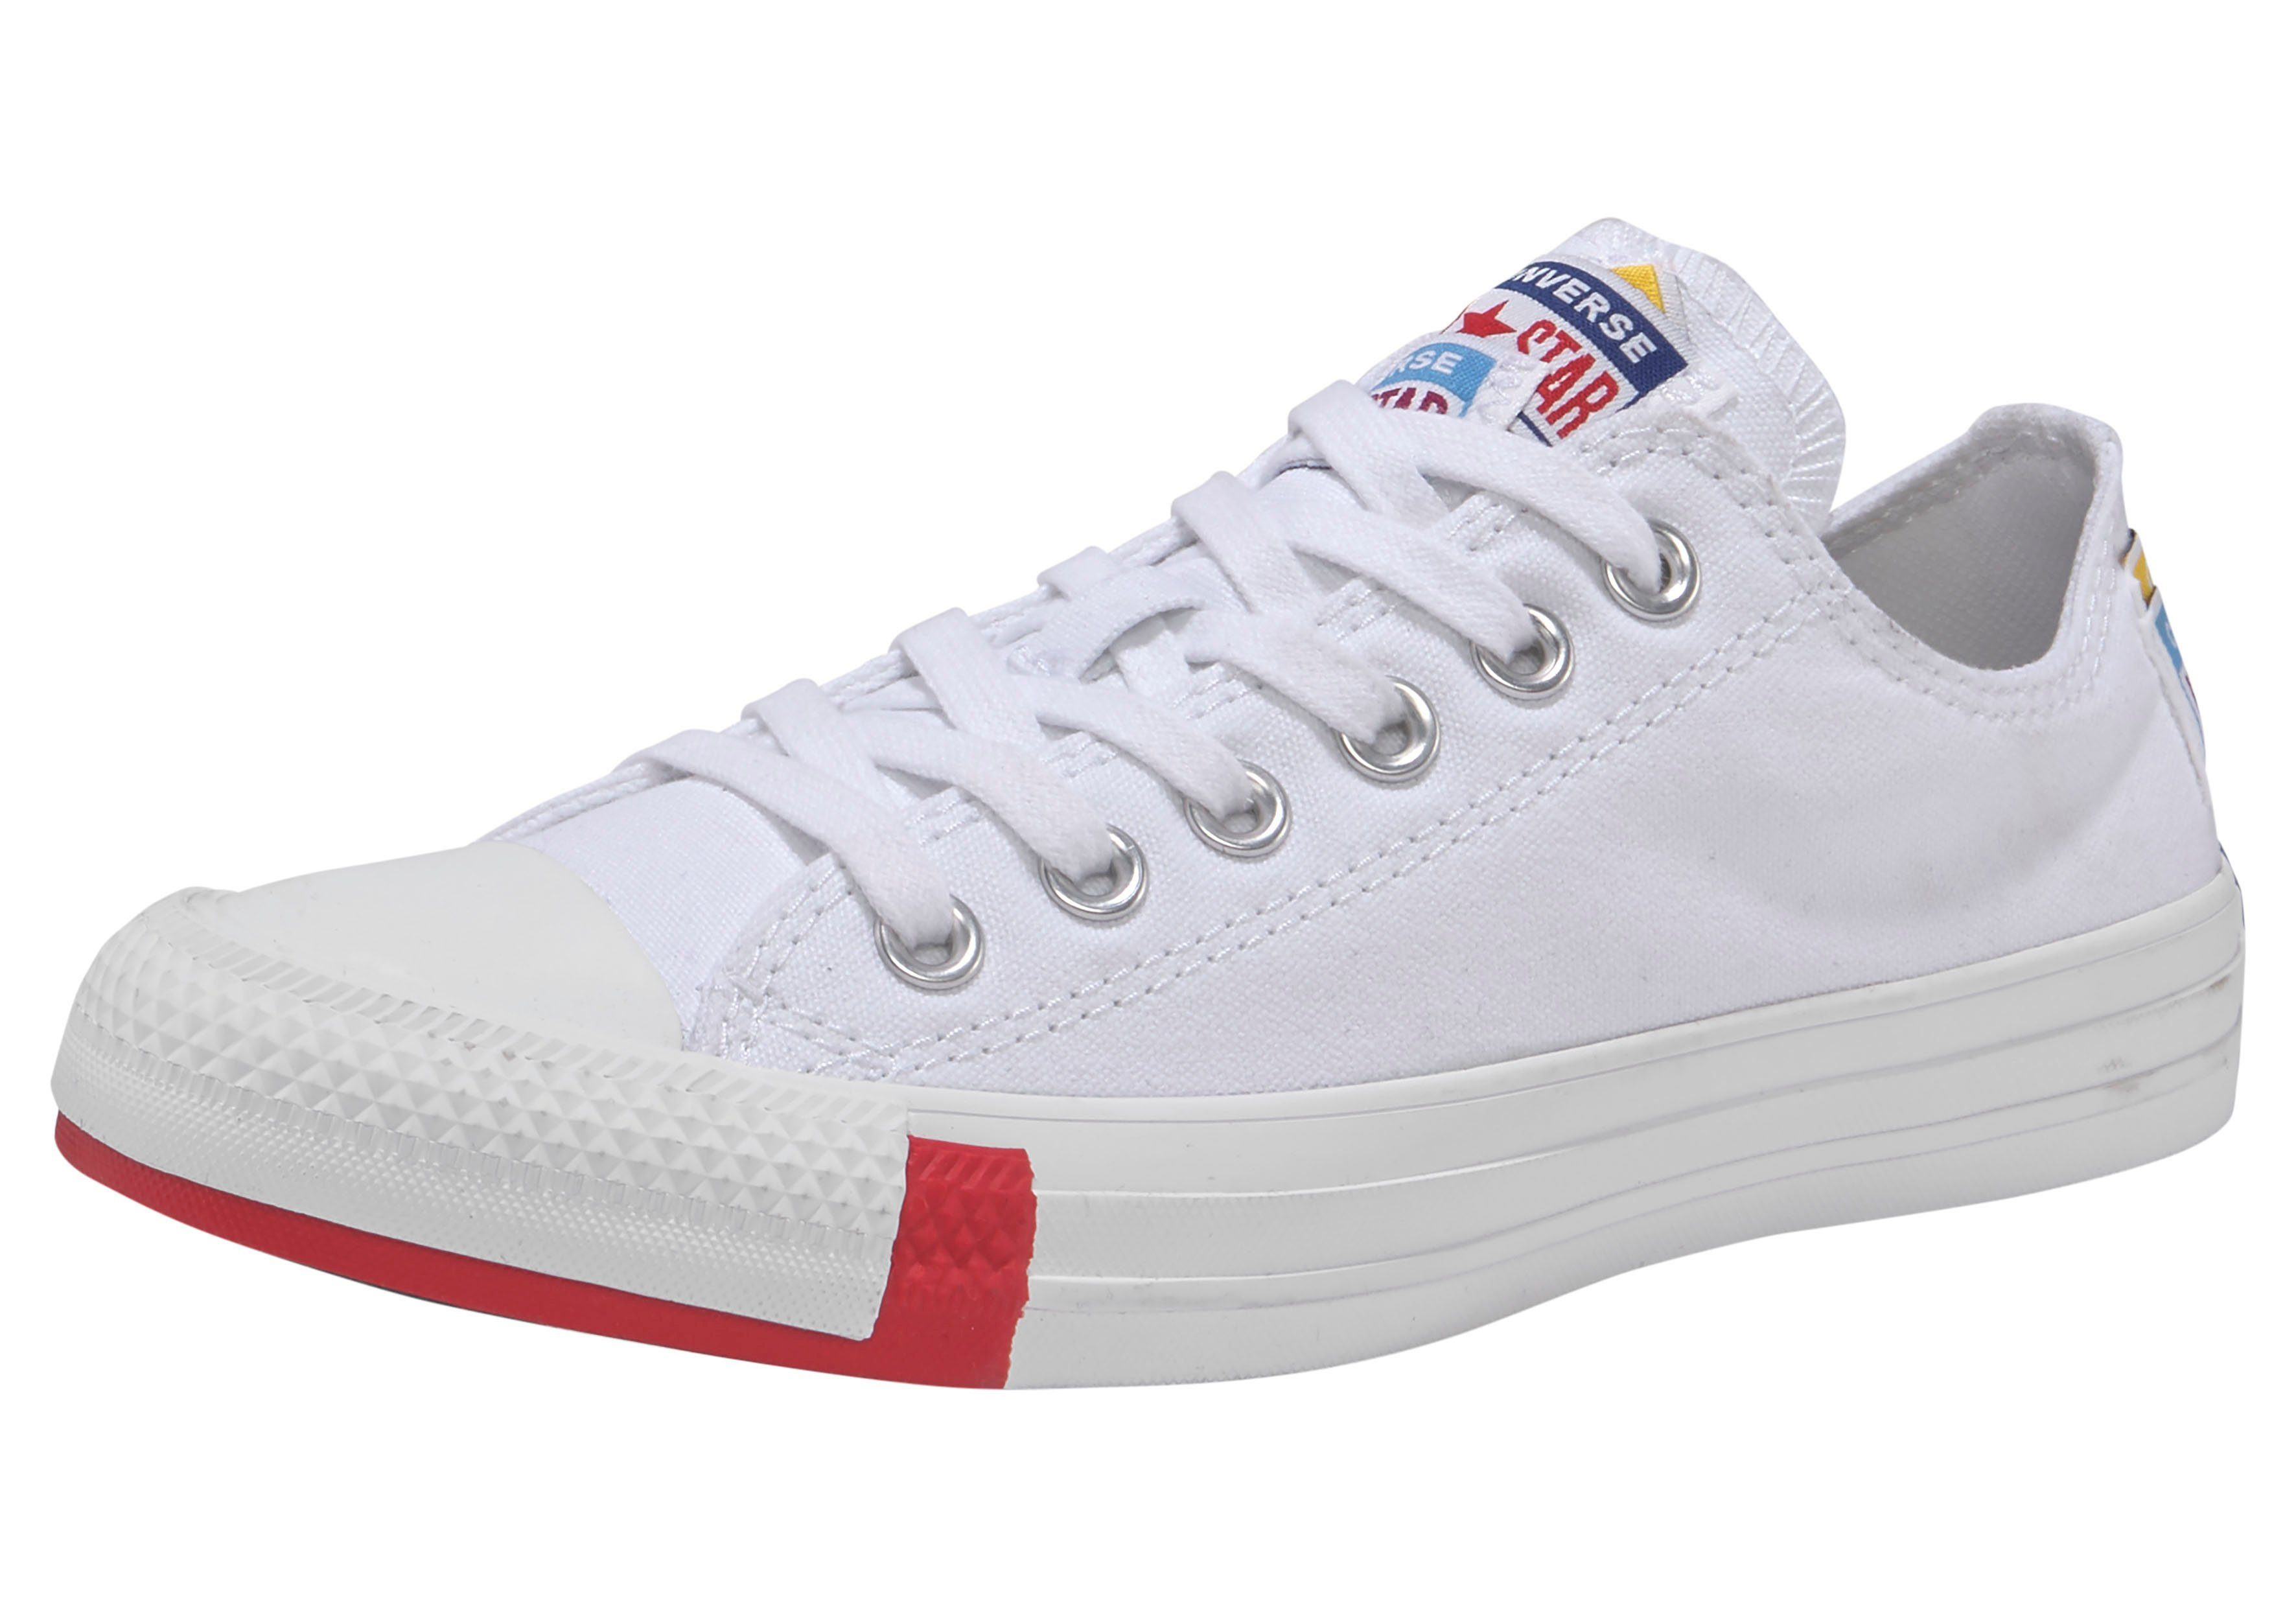 Converse »Chuck Taylor All Star Ox Twisted Classic« Sneaker online kaufen | OTTO